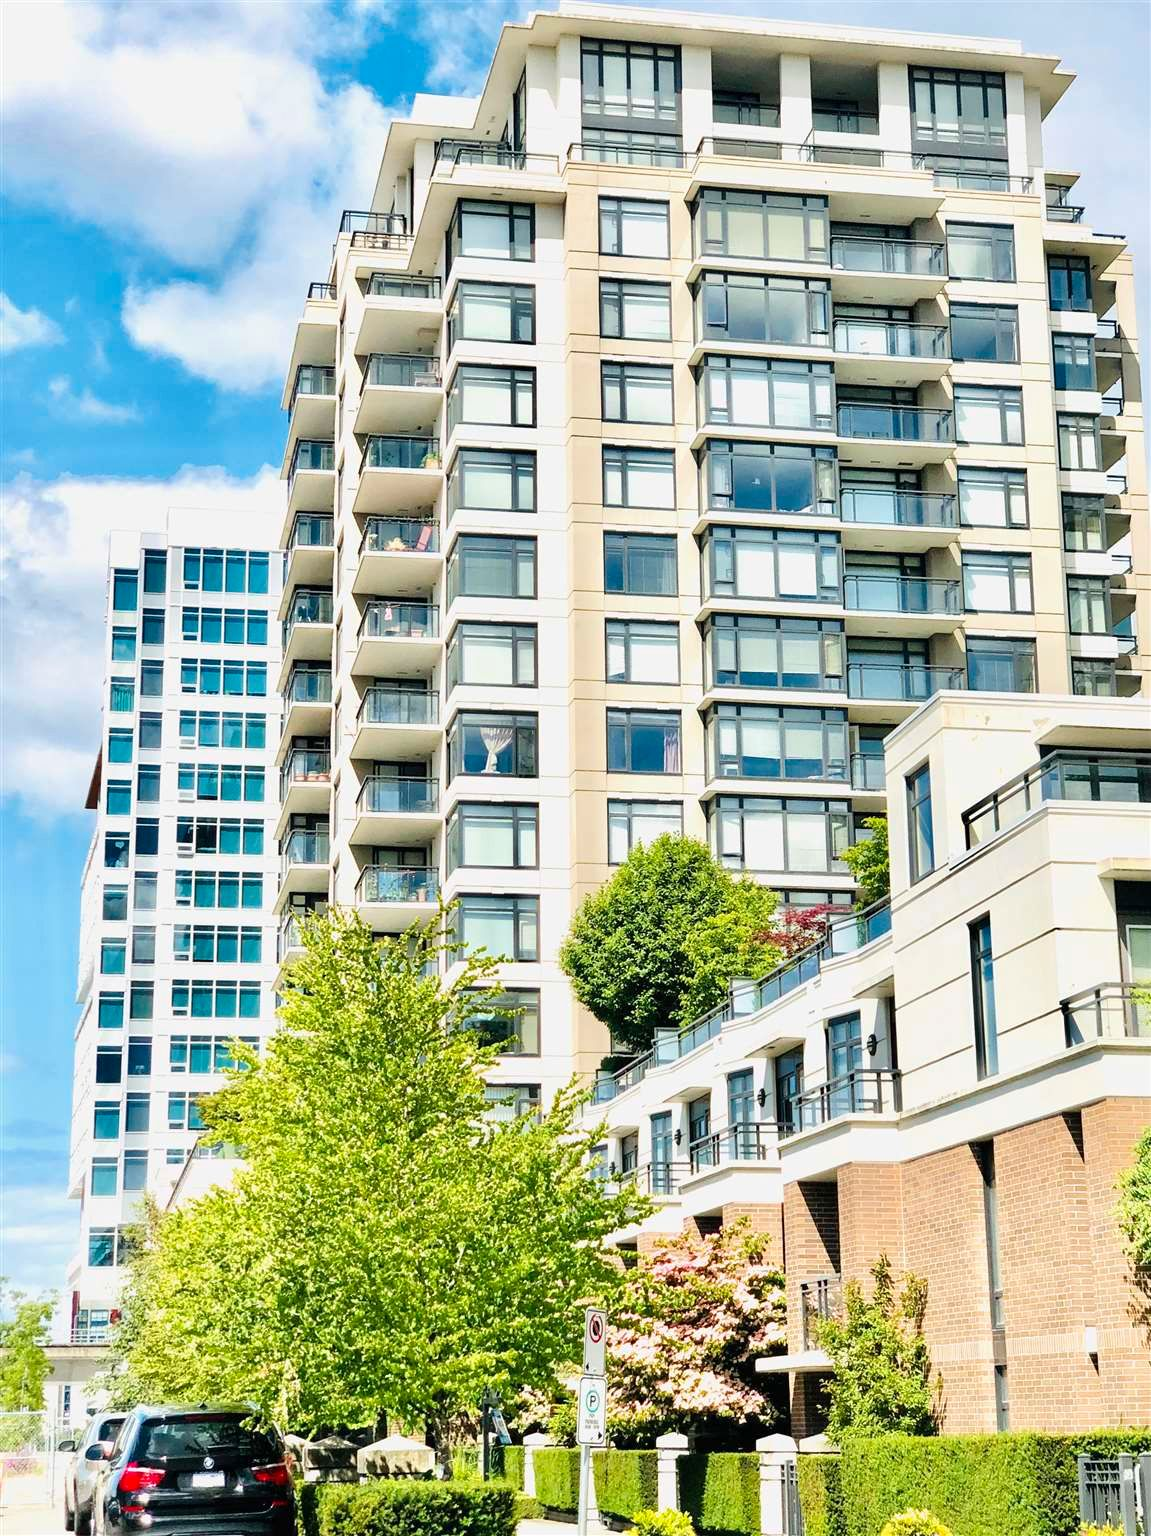 """Main Photo: 1202 6351 BUSWELL Street in Richmond: Brighouse Condo for sale in """"EMPORIO"""" : MLS®# R2598772"""